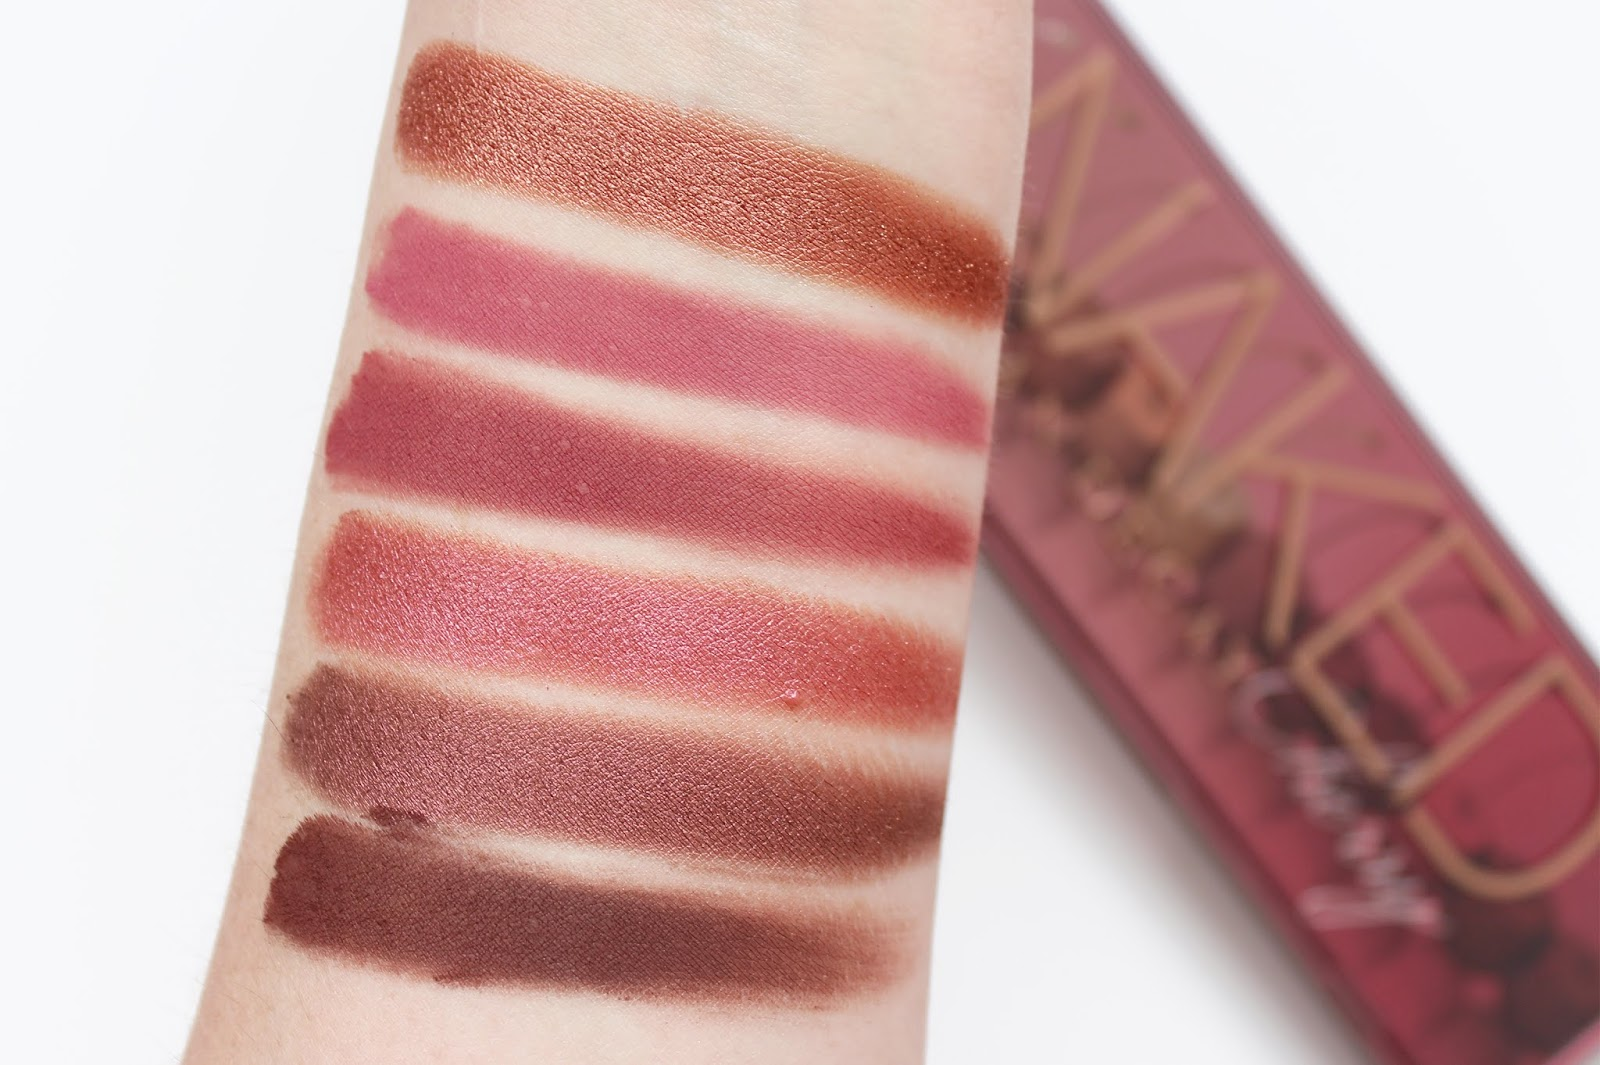 URBAN DECAY | Naked Cherry Palette - Review + Swatches - CassandraMyee